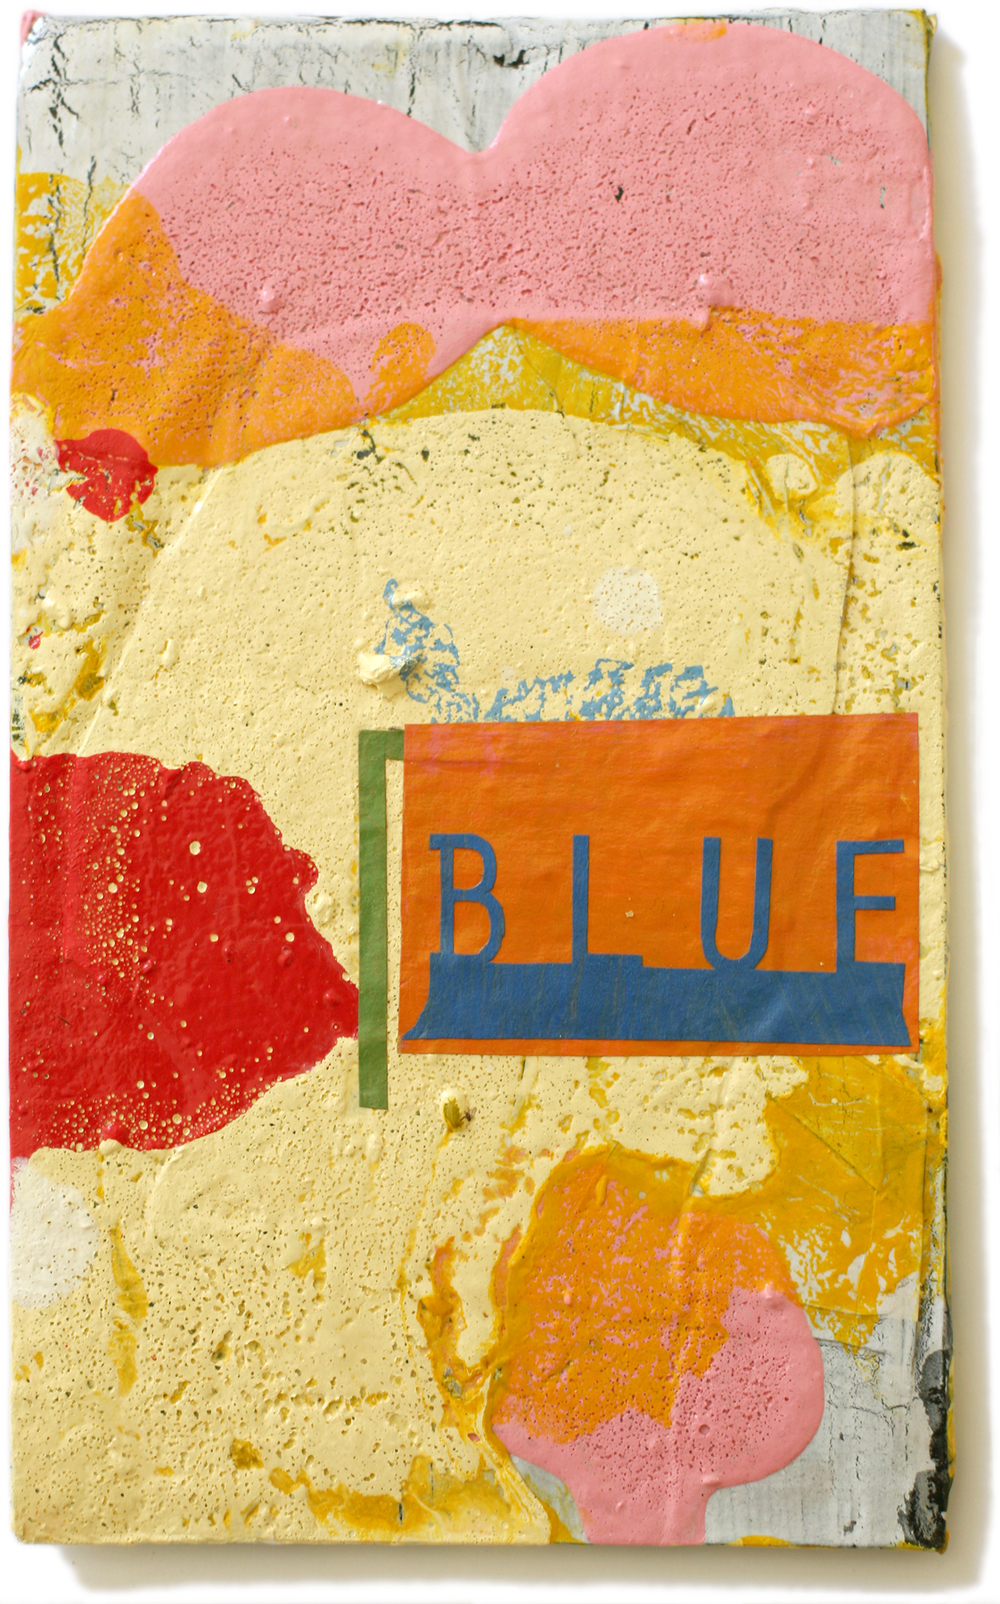 "Blue, 10"" x 6"", 2008-2010 (private collection)"